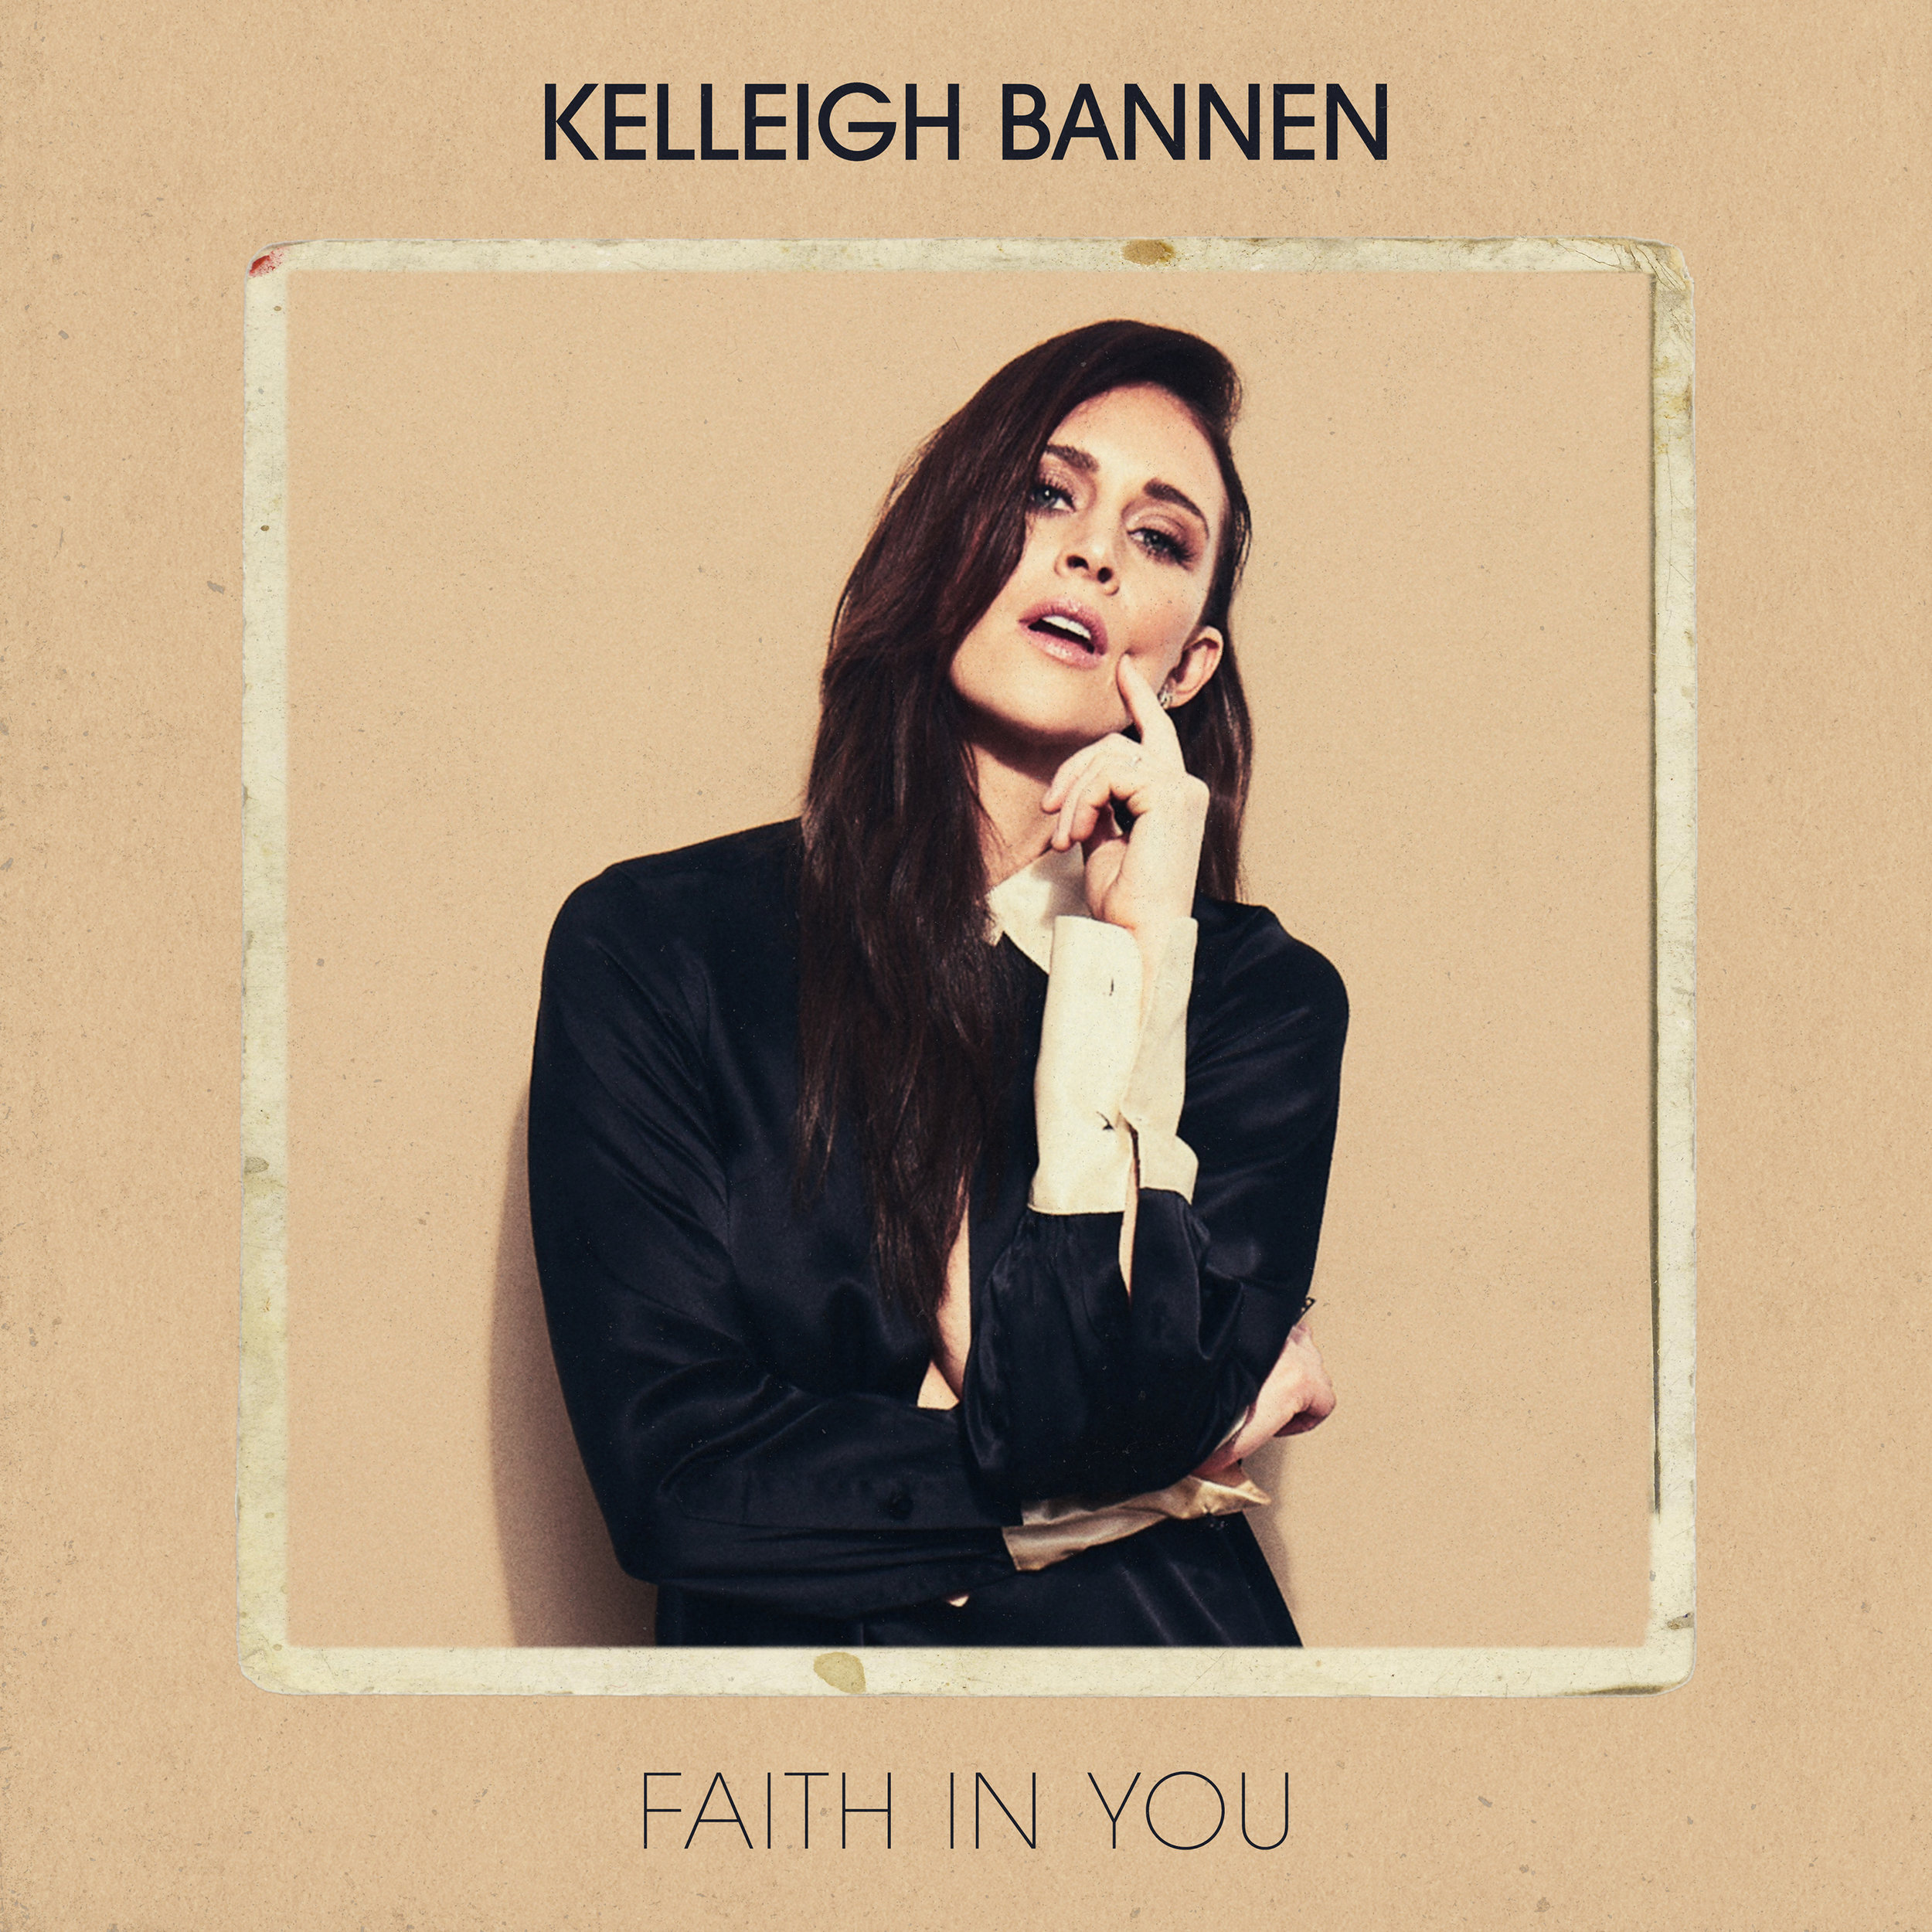 KELLEIGH_BANNEN-FAITH_IN_YOU.jpg